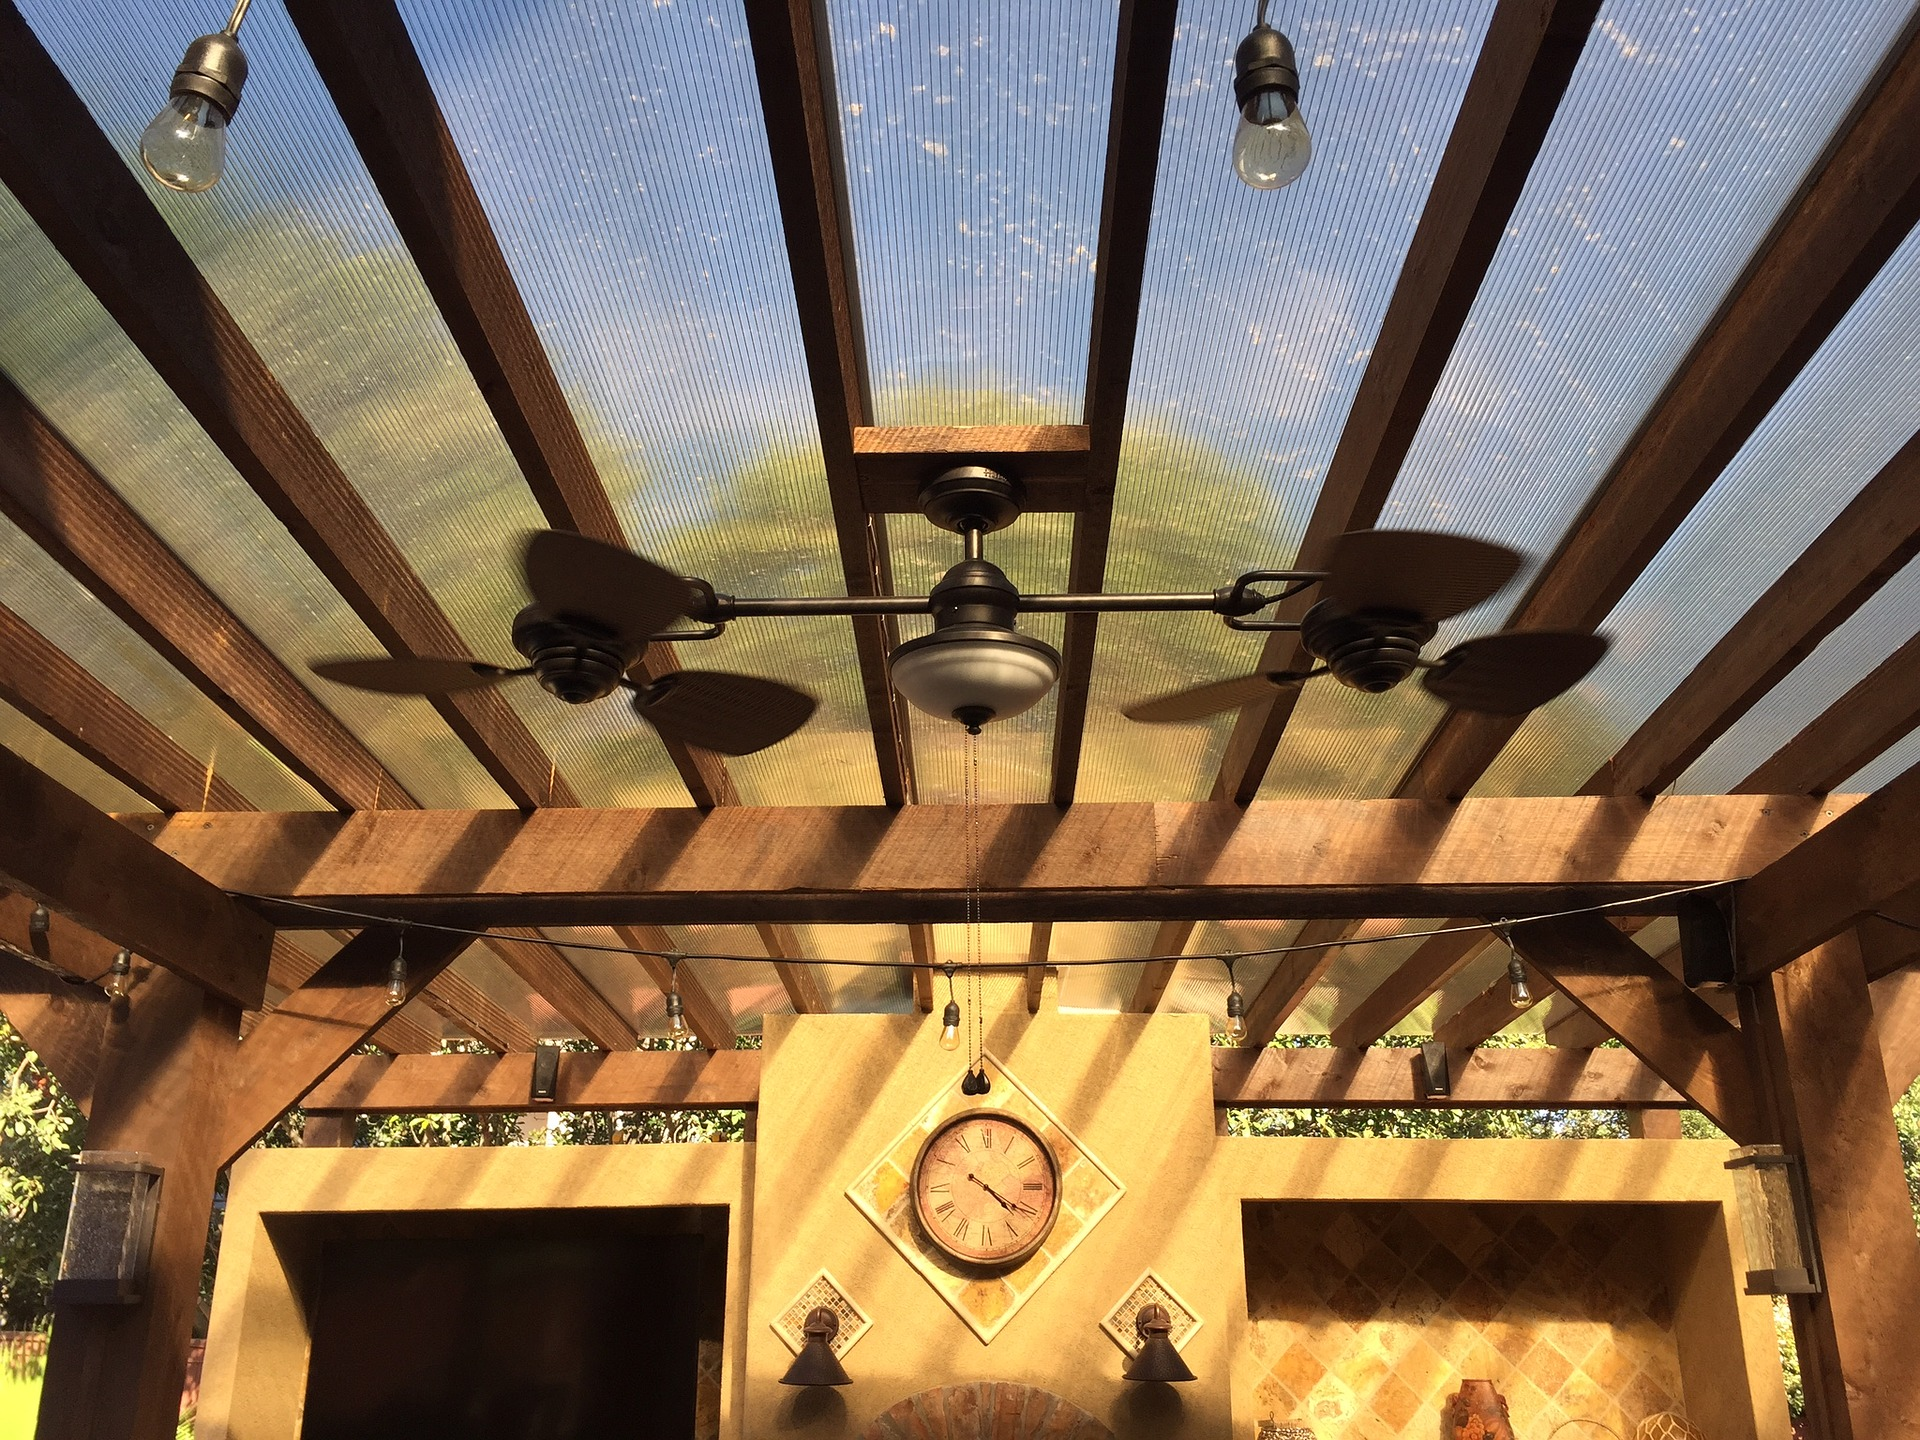 Outdoor Patio Lighting and Heat Lamps